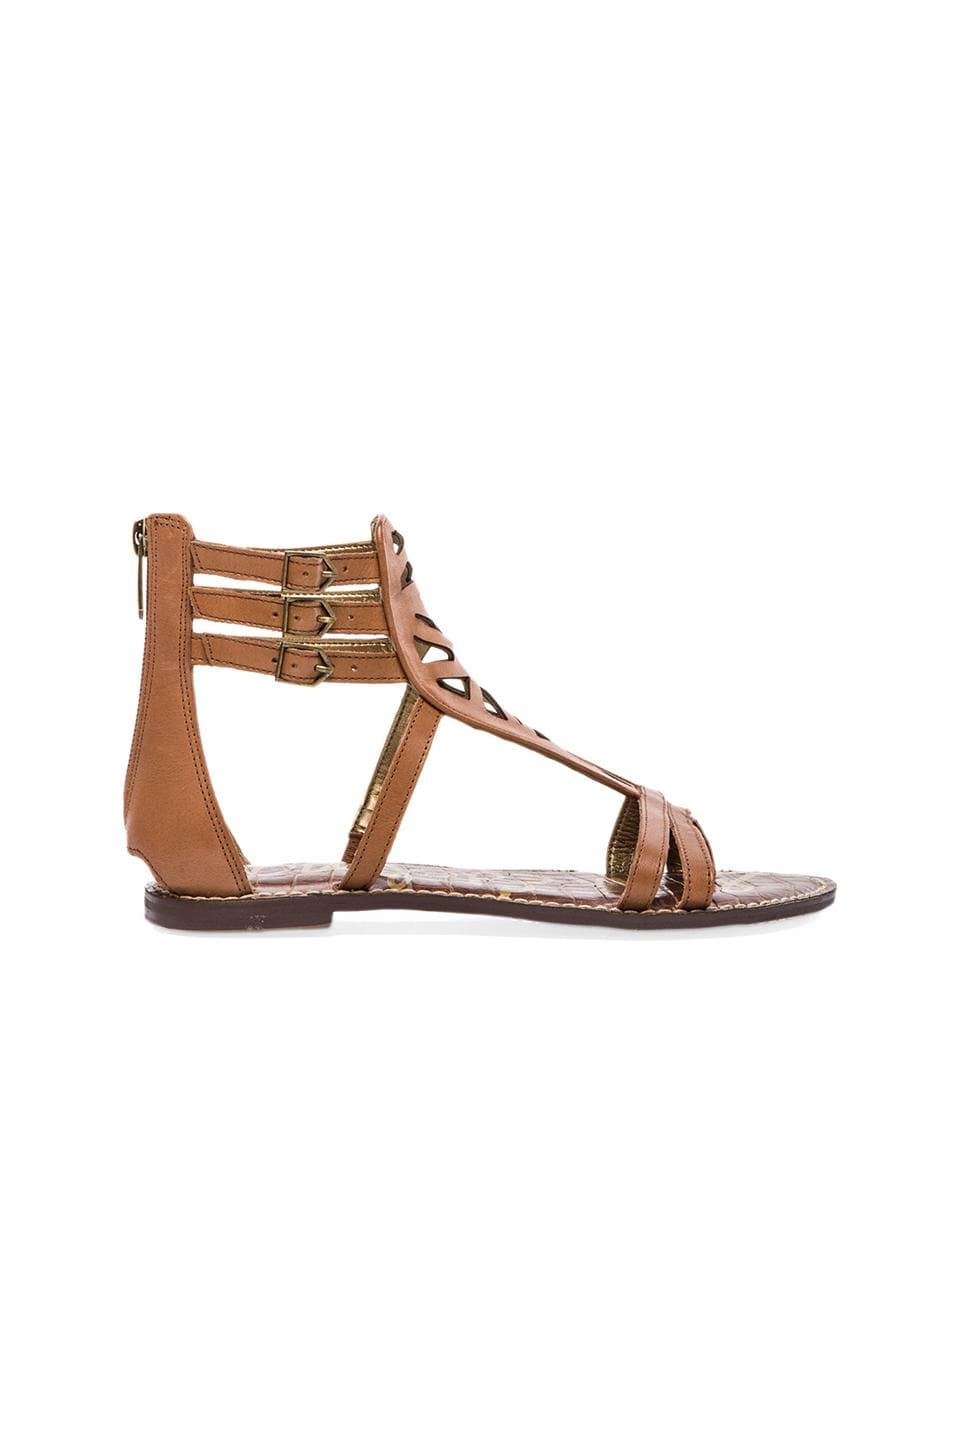 Sam Edelman Georgia Sandal in Saddle